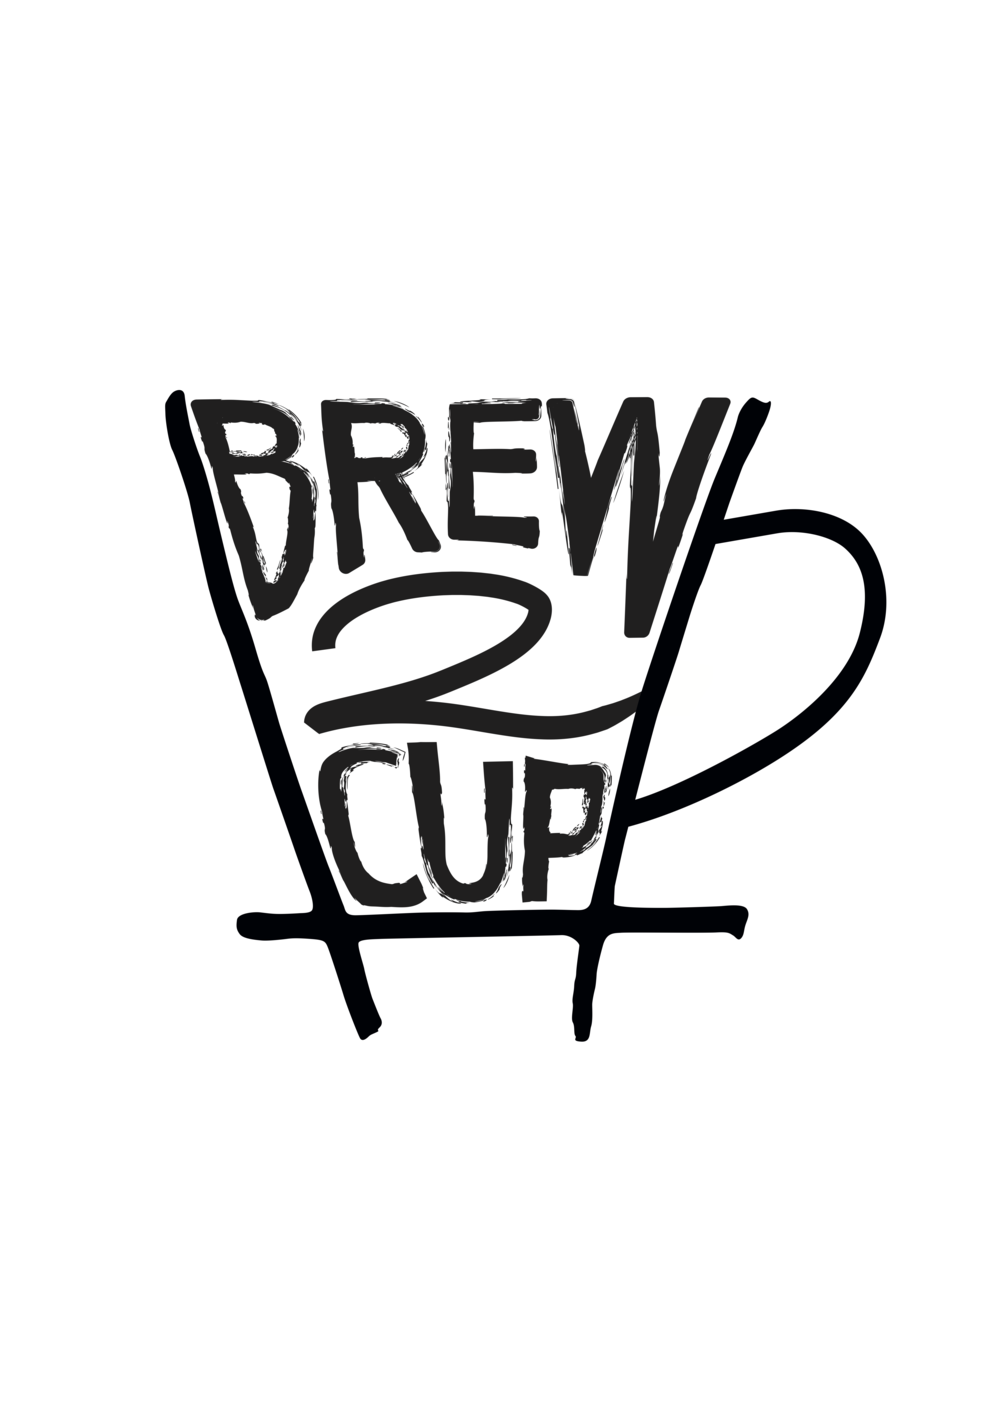 https://brew2cup.nl/